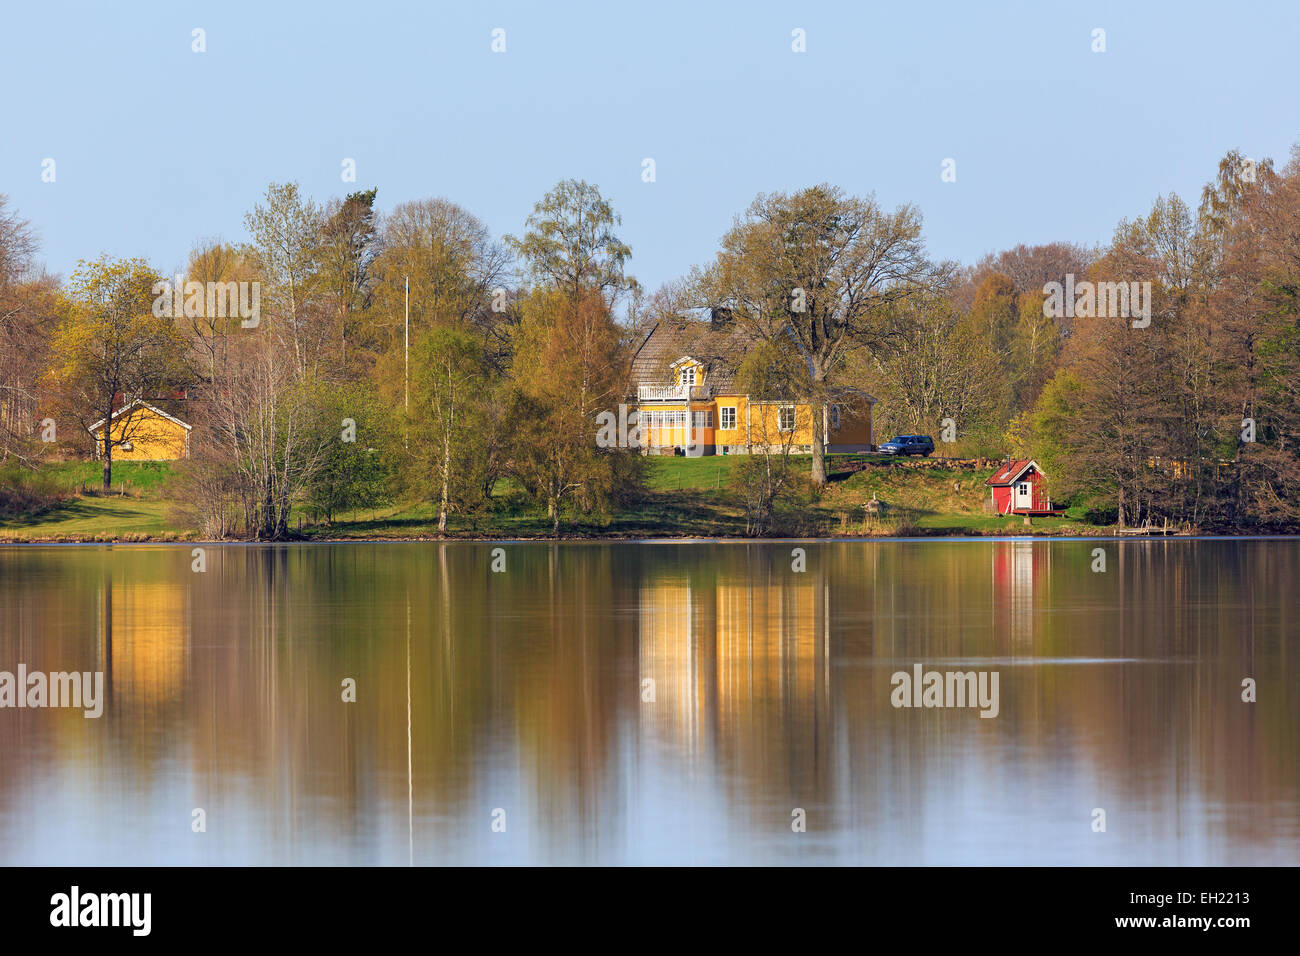 Houses on the hill by the lake in the spring - Stock Image